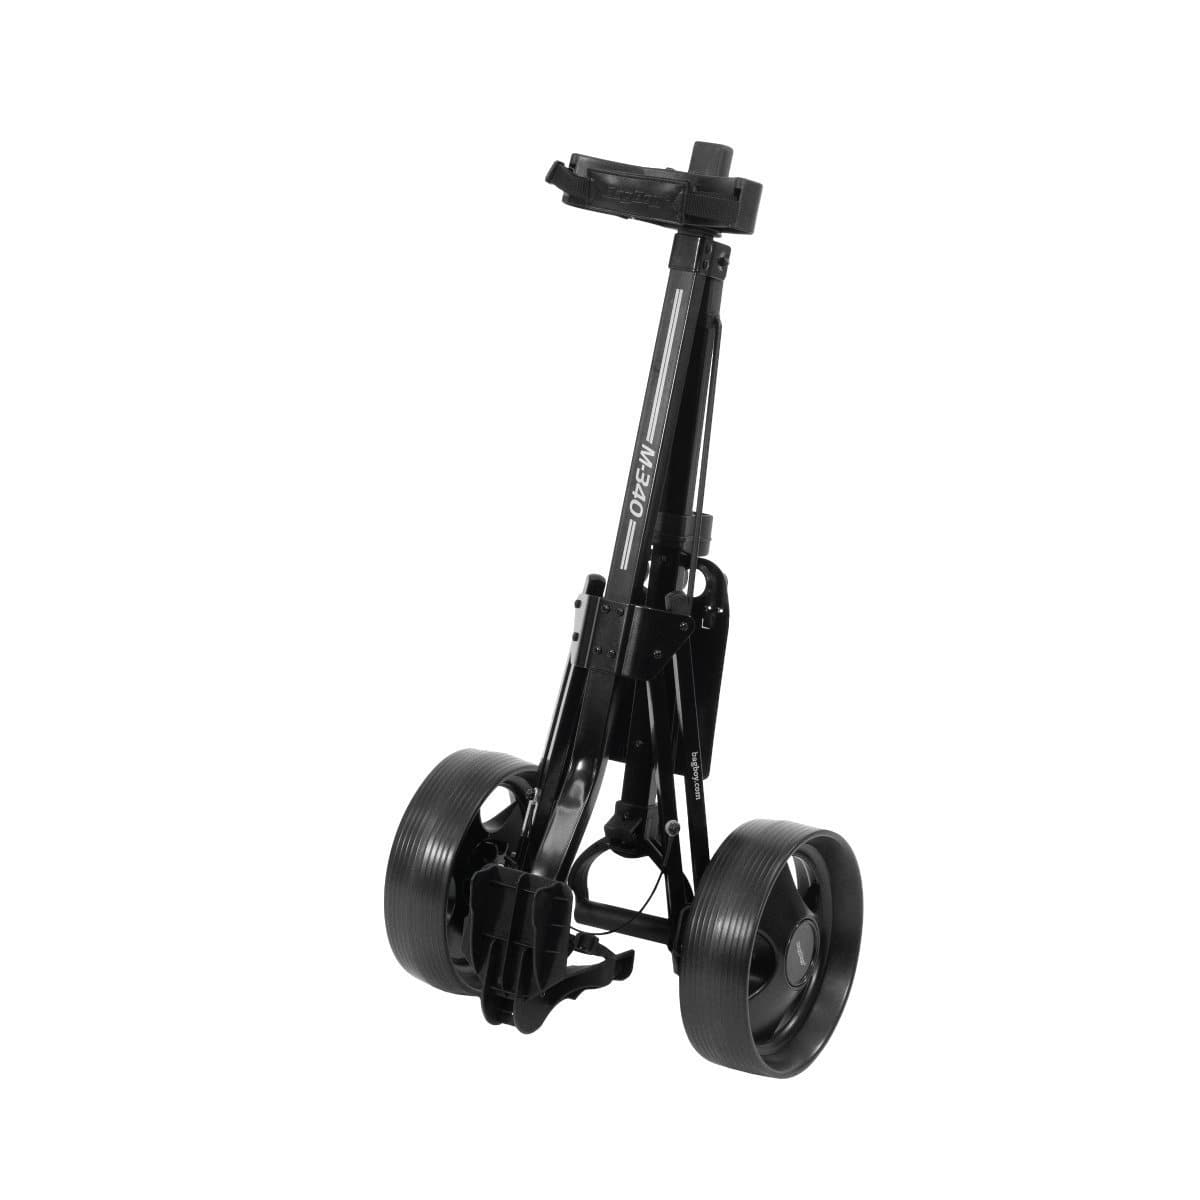 Bag Boy M-340 Pull Cart